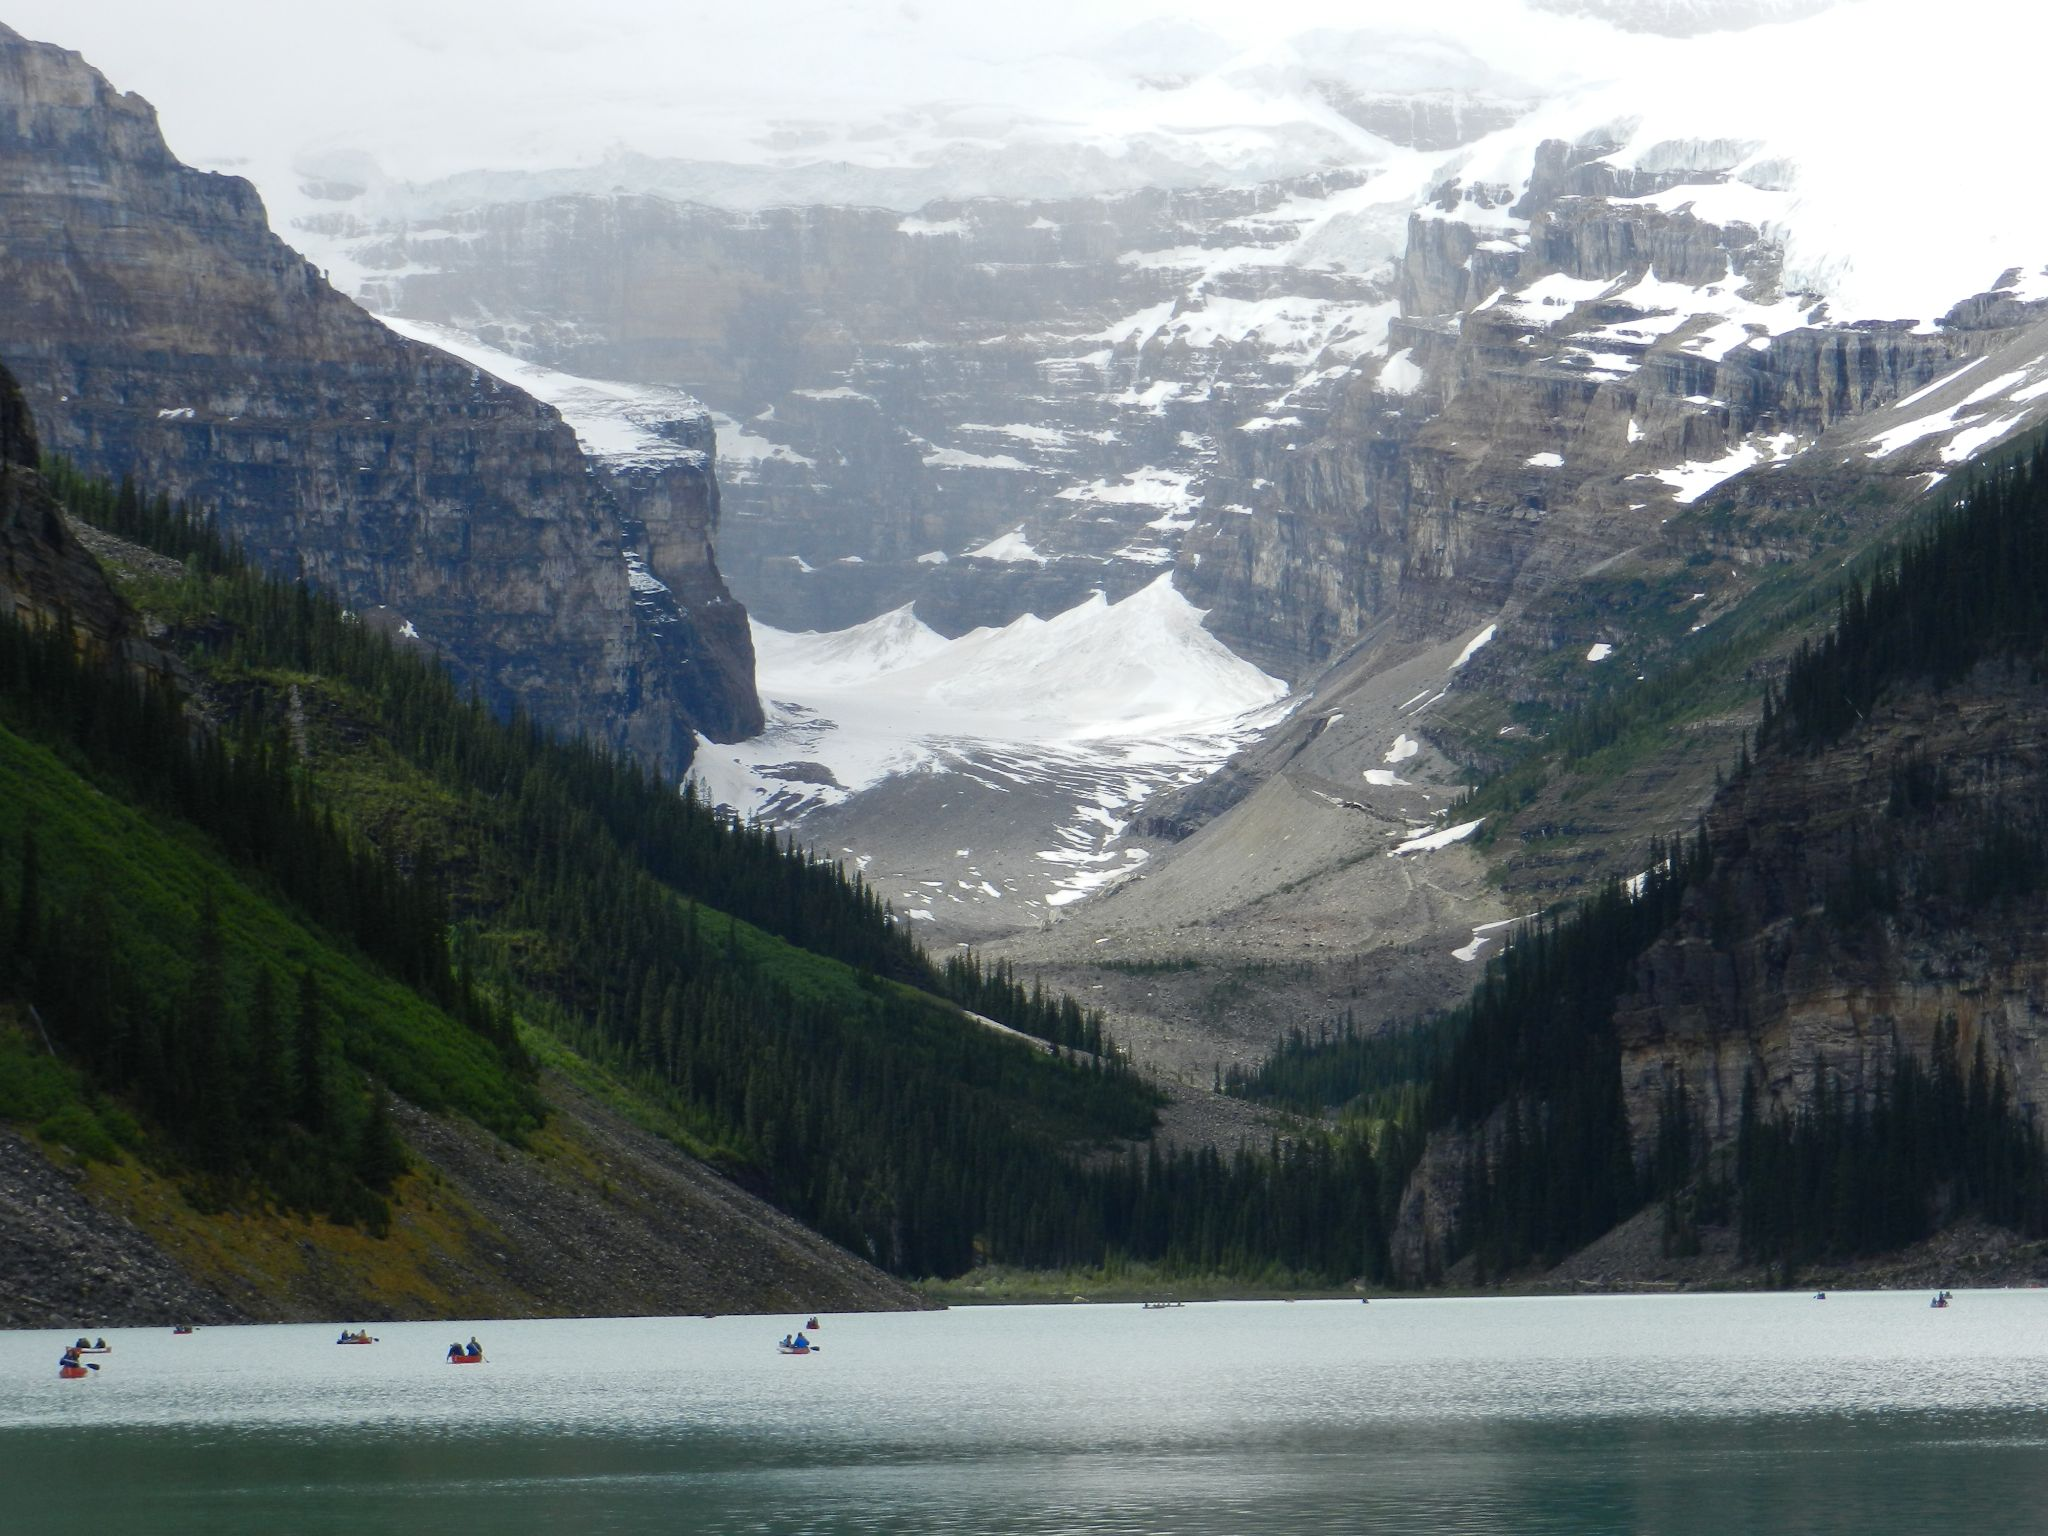 Boating at Lake Louise by Annette McCann